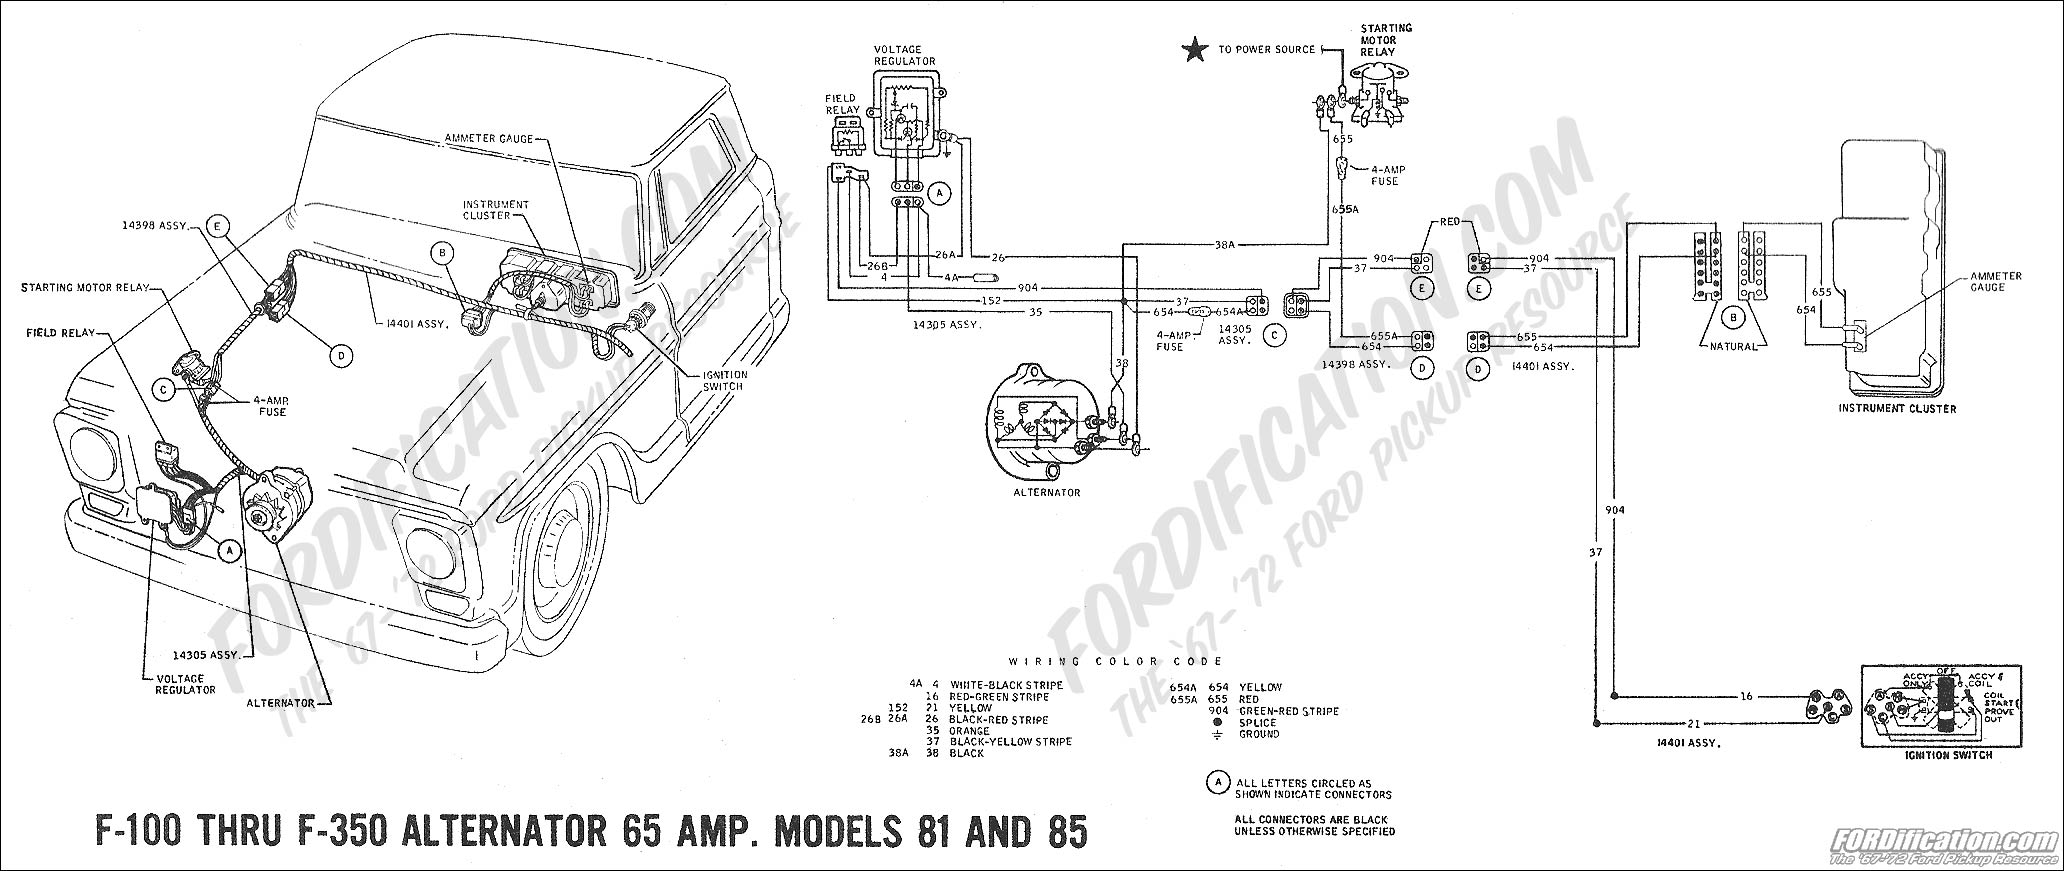 1977 ford alternator wiring wiring diagram sample 1977 ford truck alternator wiring wiring diagrams bib 1977 ford f150 alternator wiring 1974 ford truck